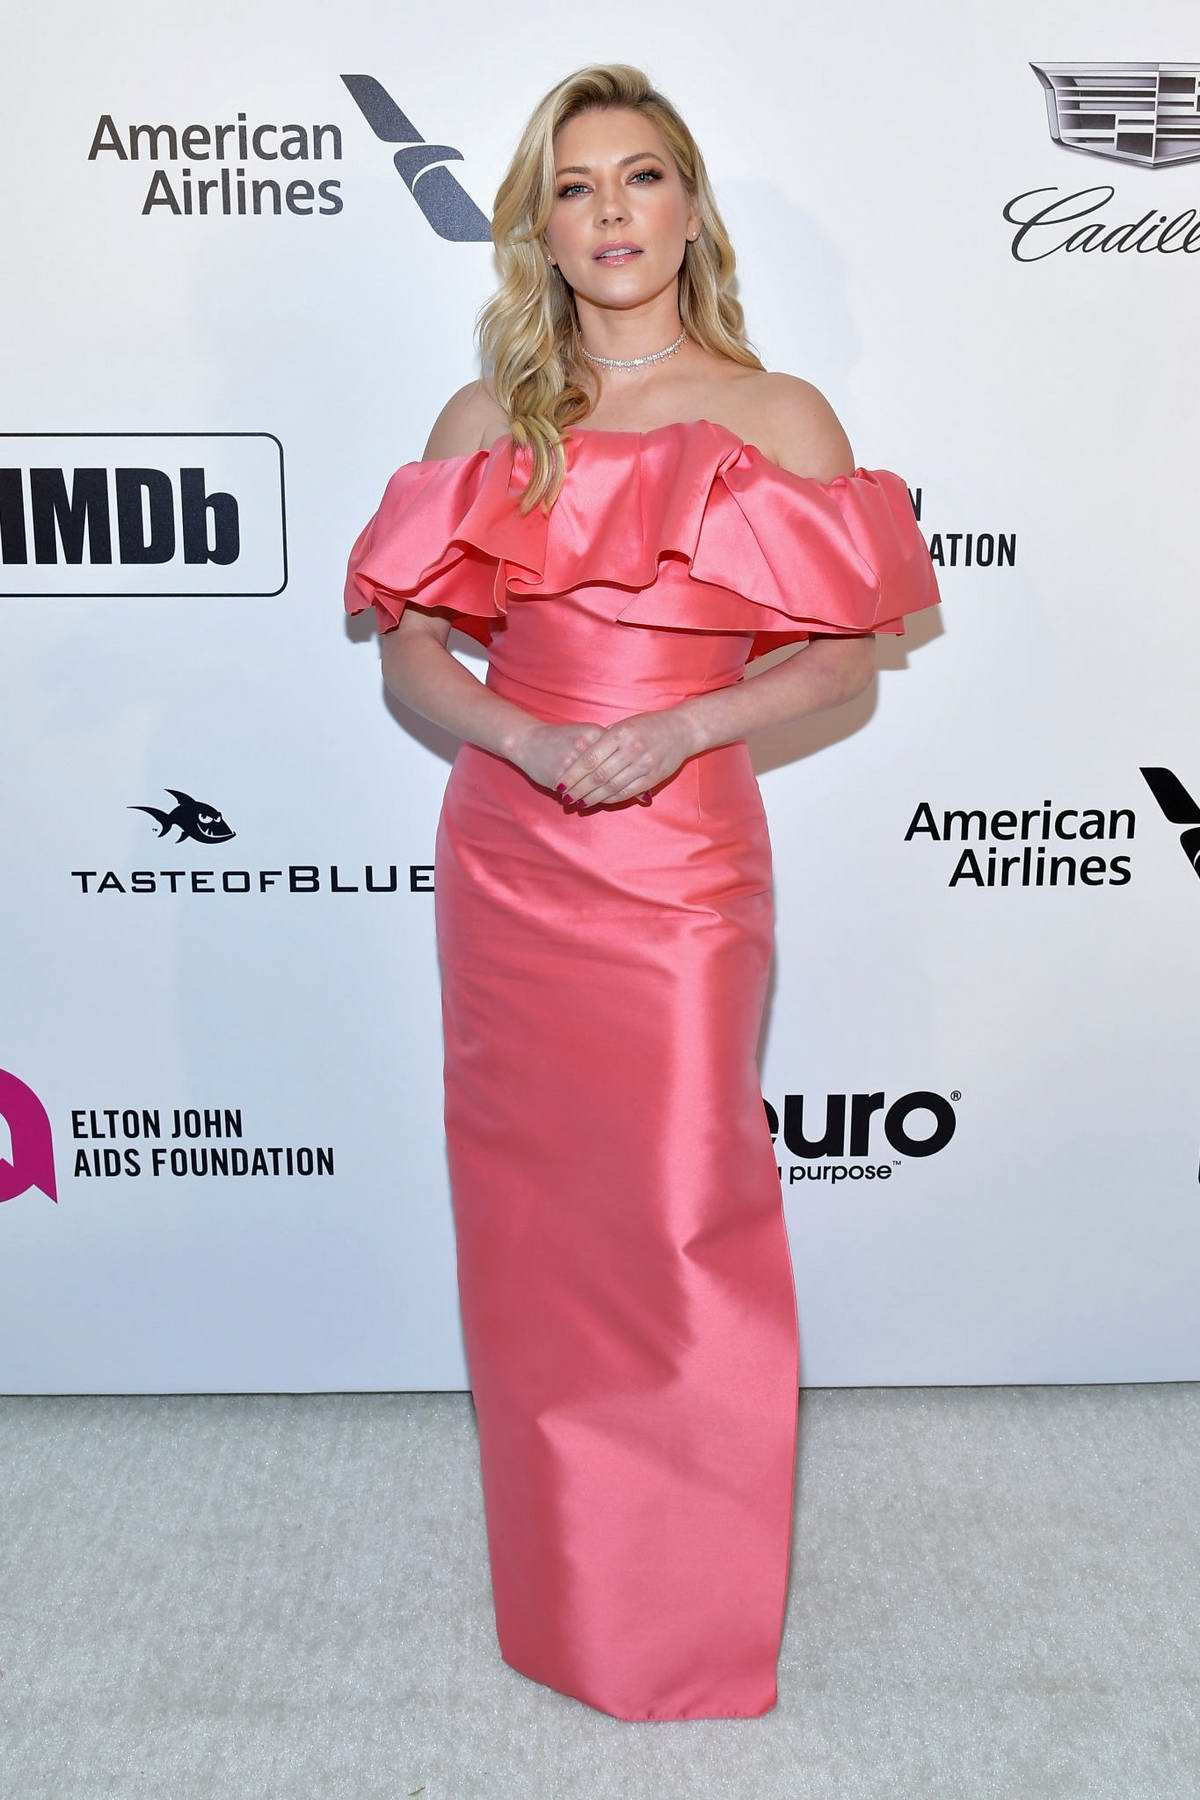 Katheryn Winnick attends the 27th Annual Elton John AIDS Foundation Academy Awards Viewing Party in West Hollywood, Los Angeles